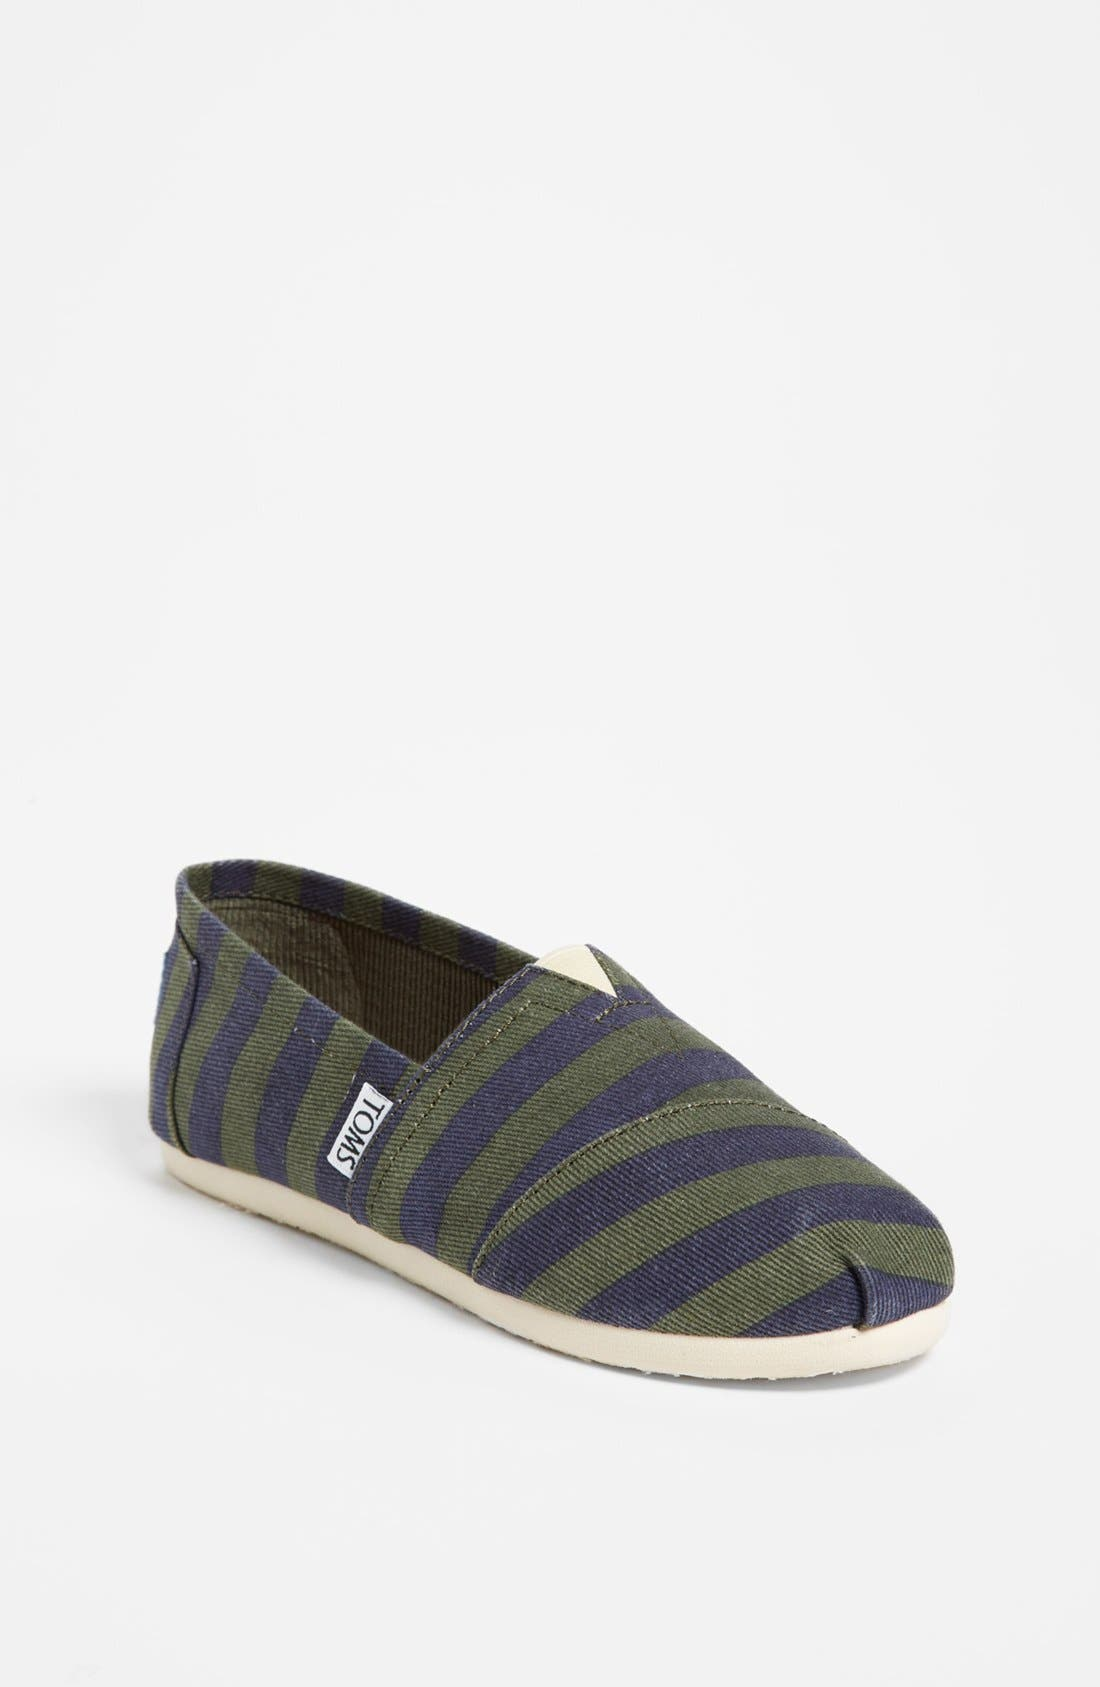 Alternate Image 1 Selected - TOMS 'Classic - Stripe' Slip-On (Toddler, Little Kid & Big Kid)(Limited Edition)